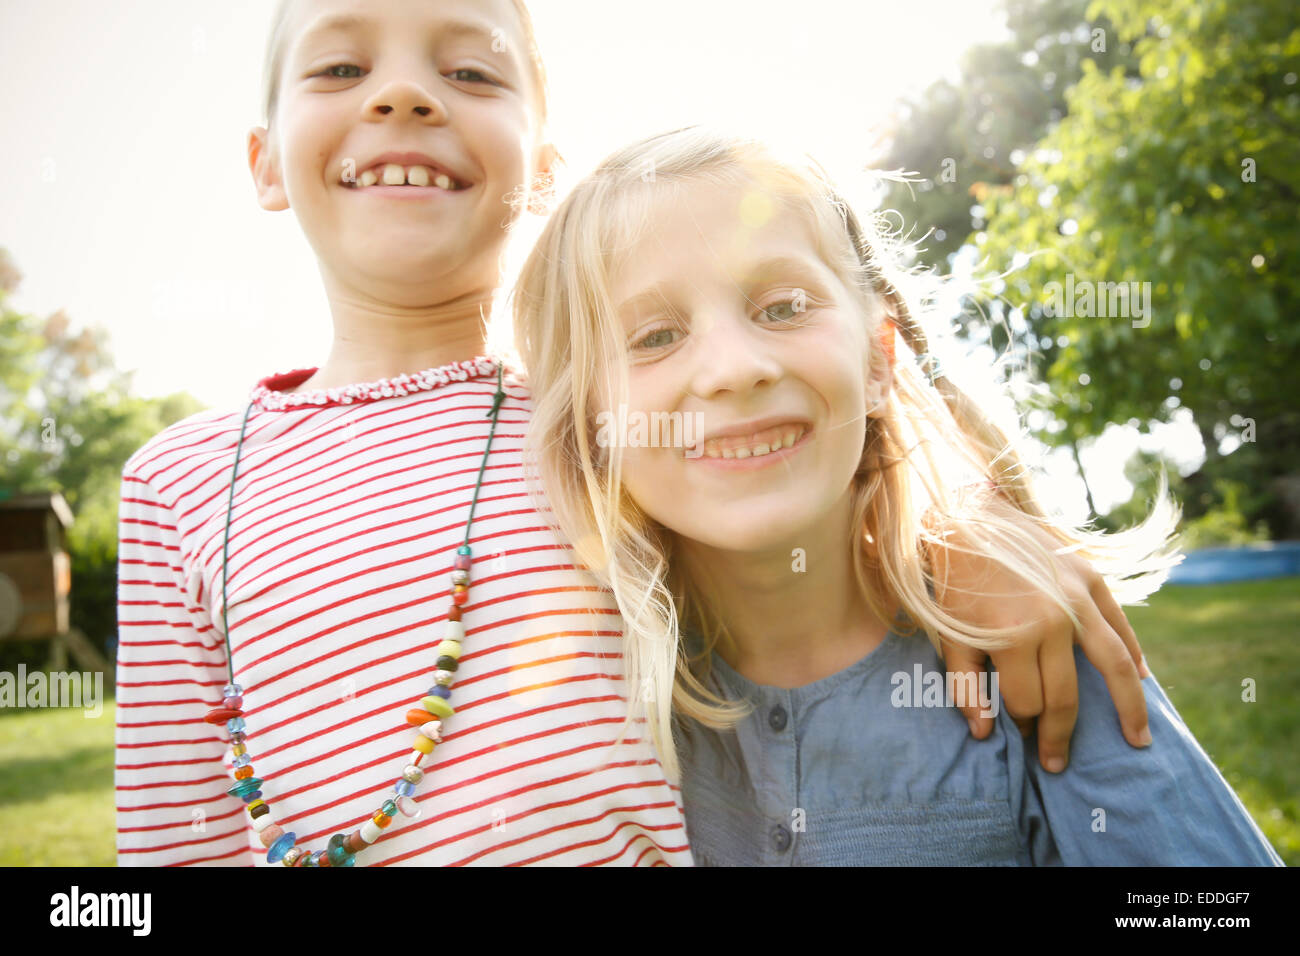 Two happy little girls - Stock Image